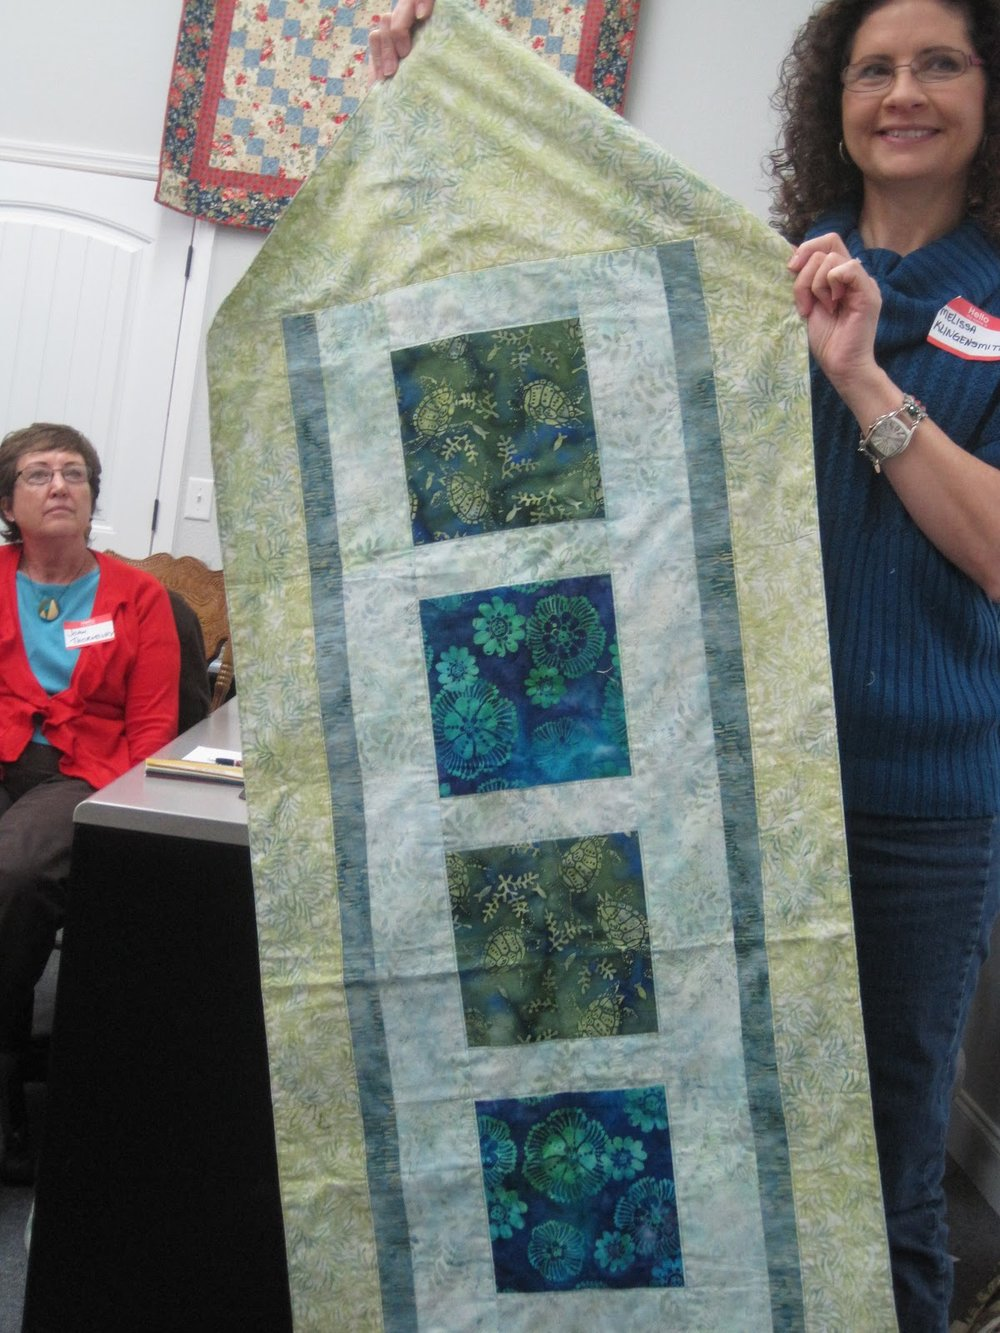 Tablecloth by Melissa Klingensmith (right)